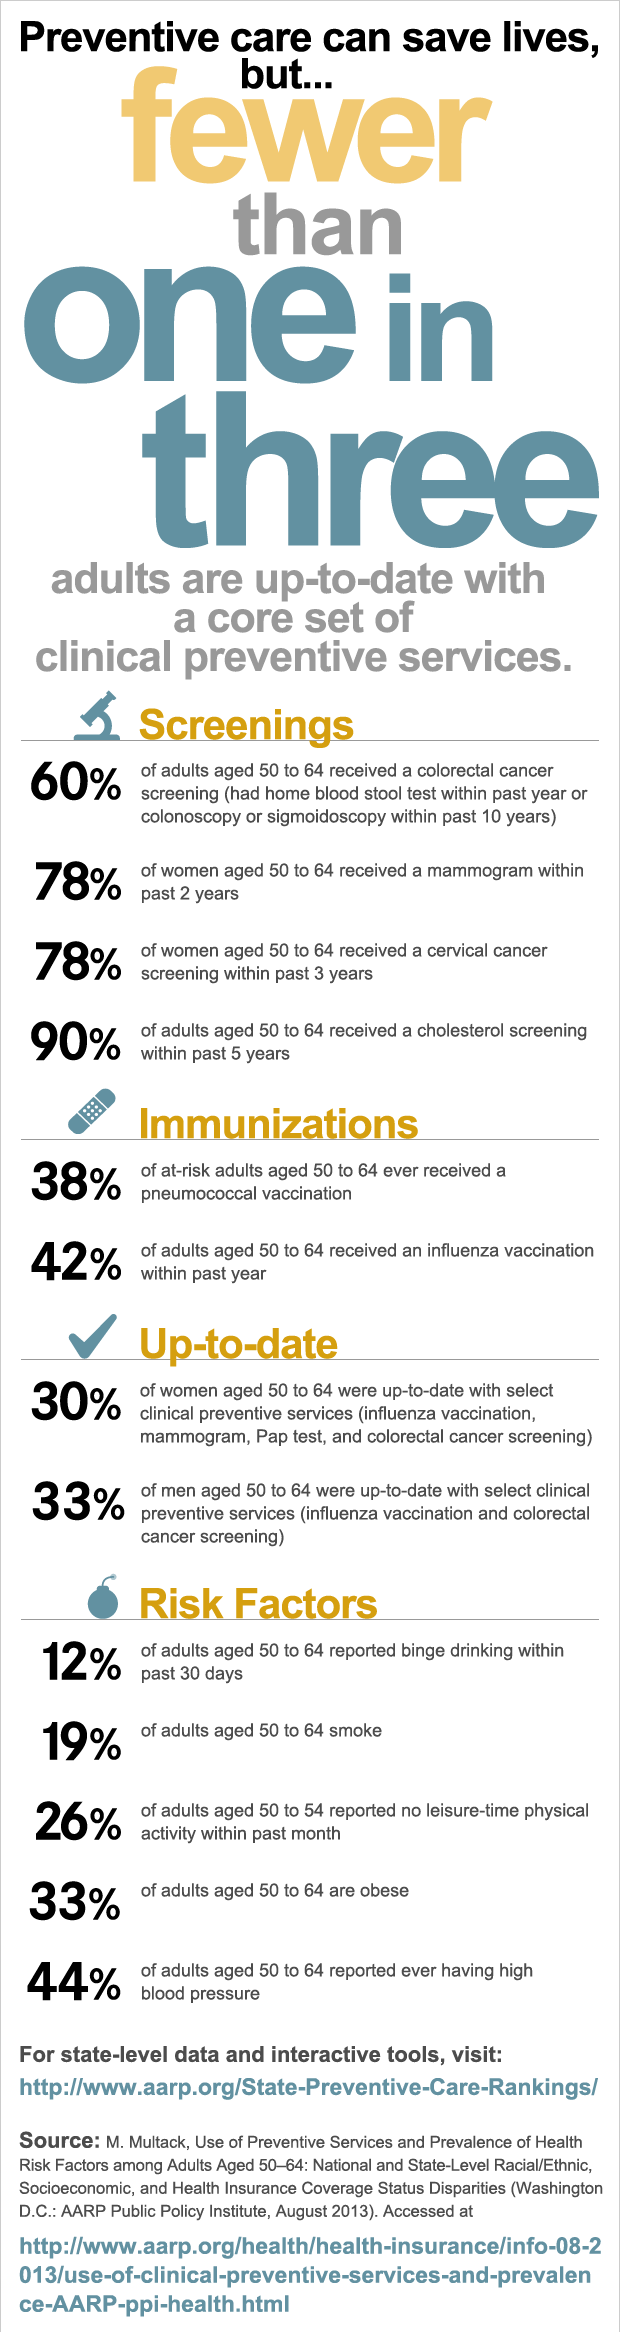 use-of-clinical-preventive-services-prevalence-of-health-risk-factors-AARP-ppi-health.png